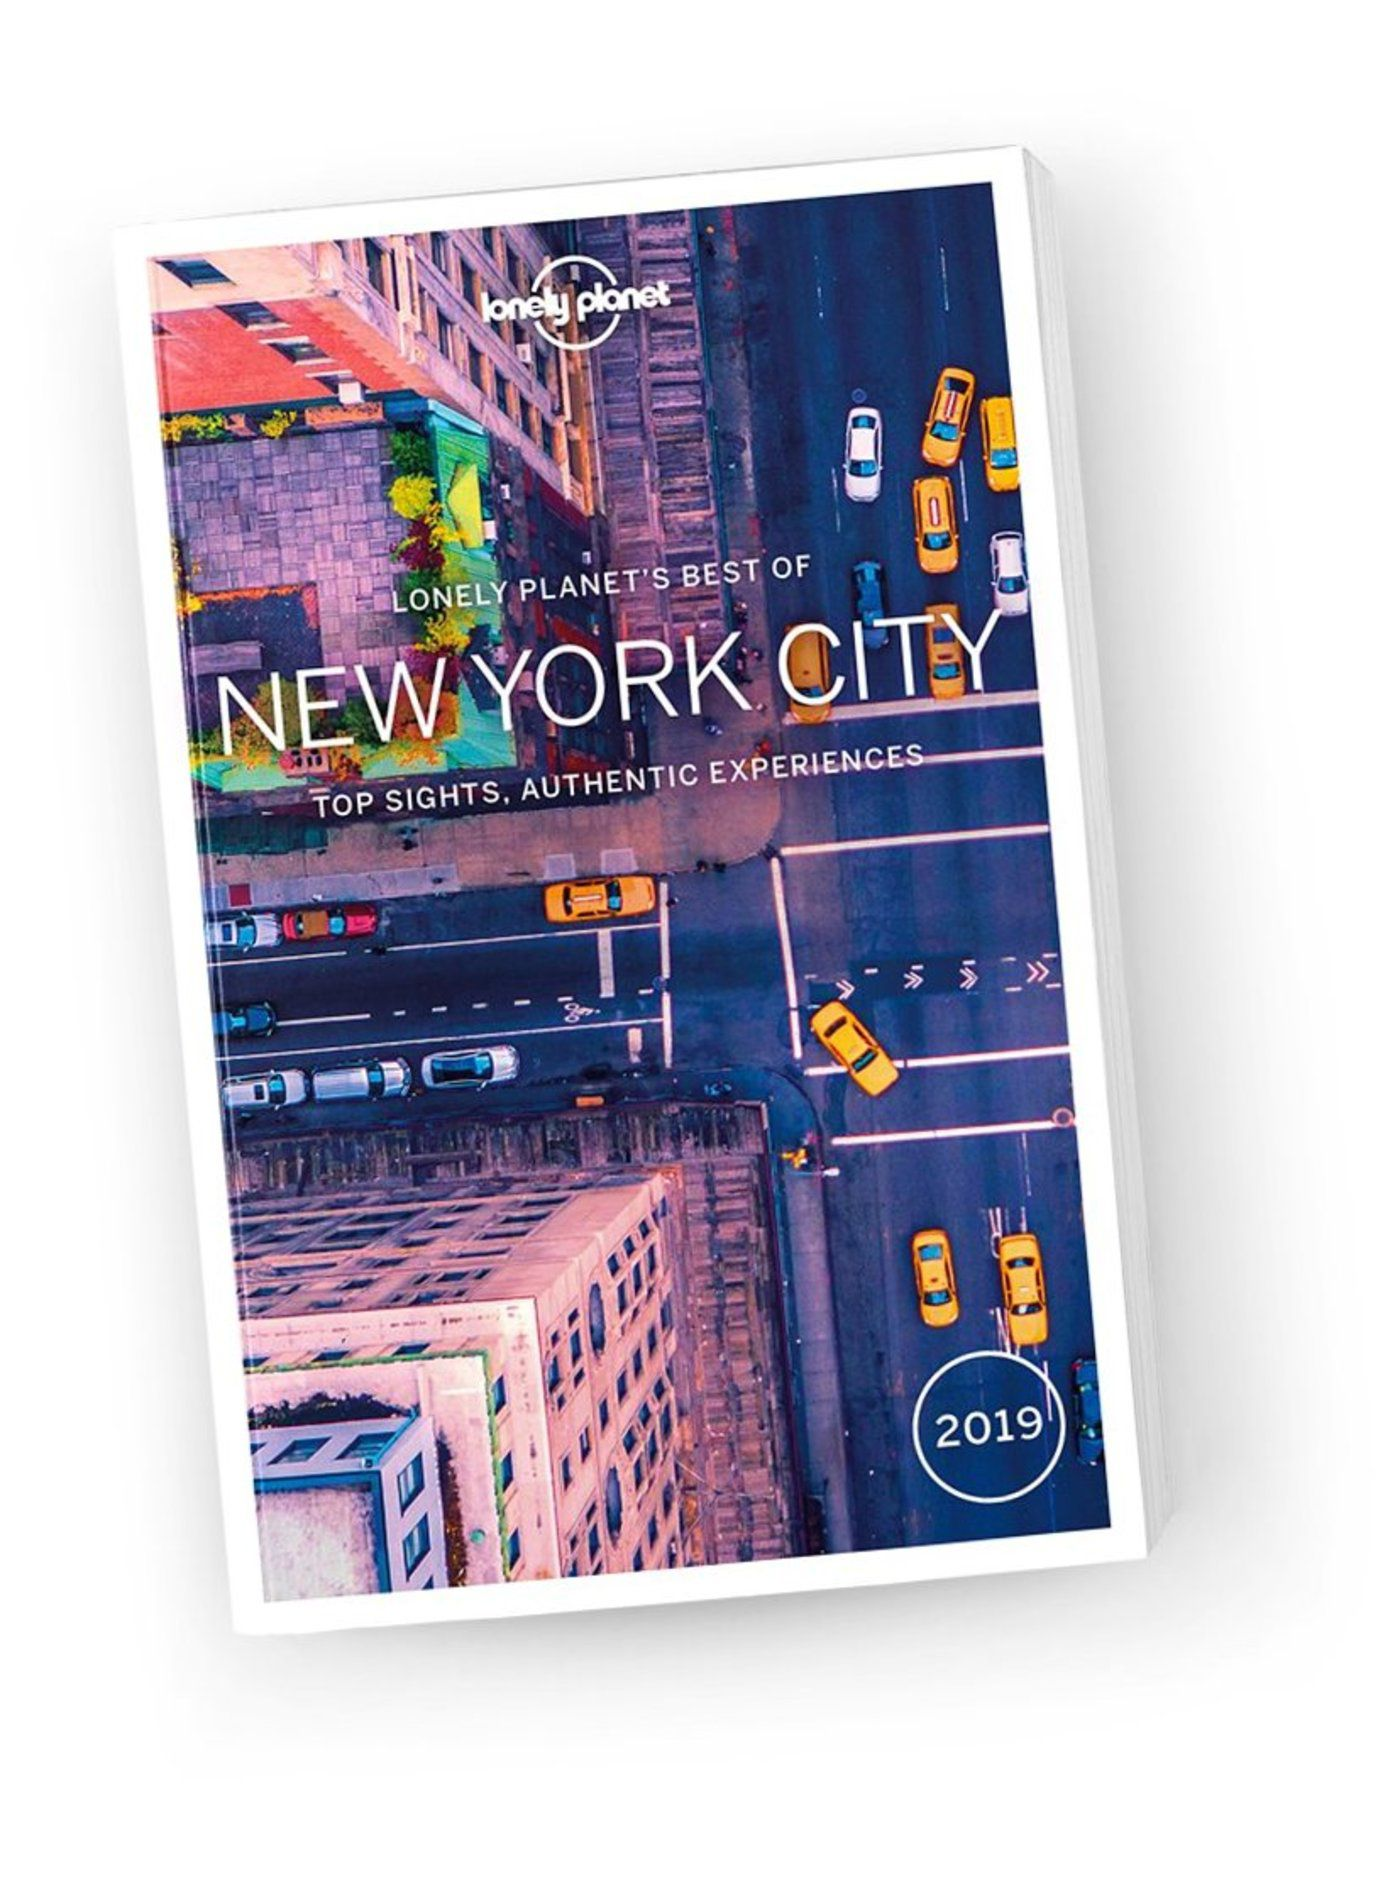 Best of New York City 2019 guide